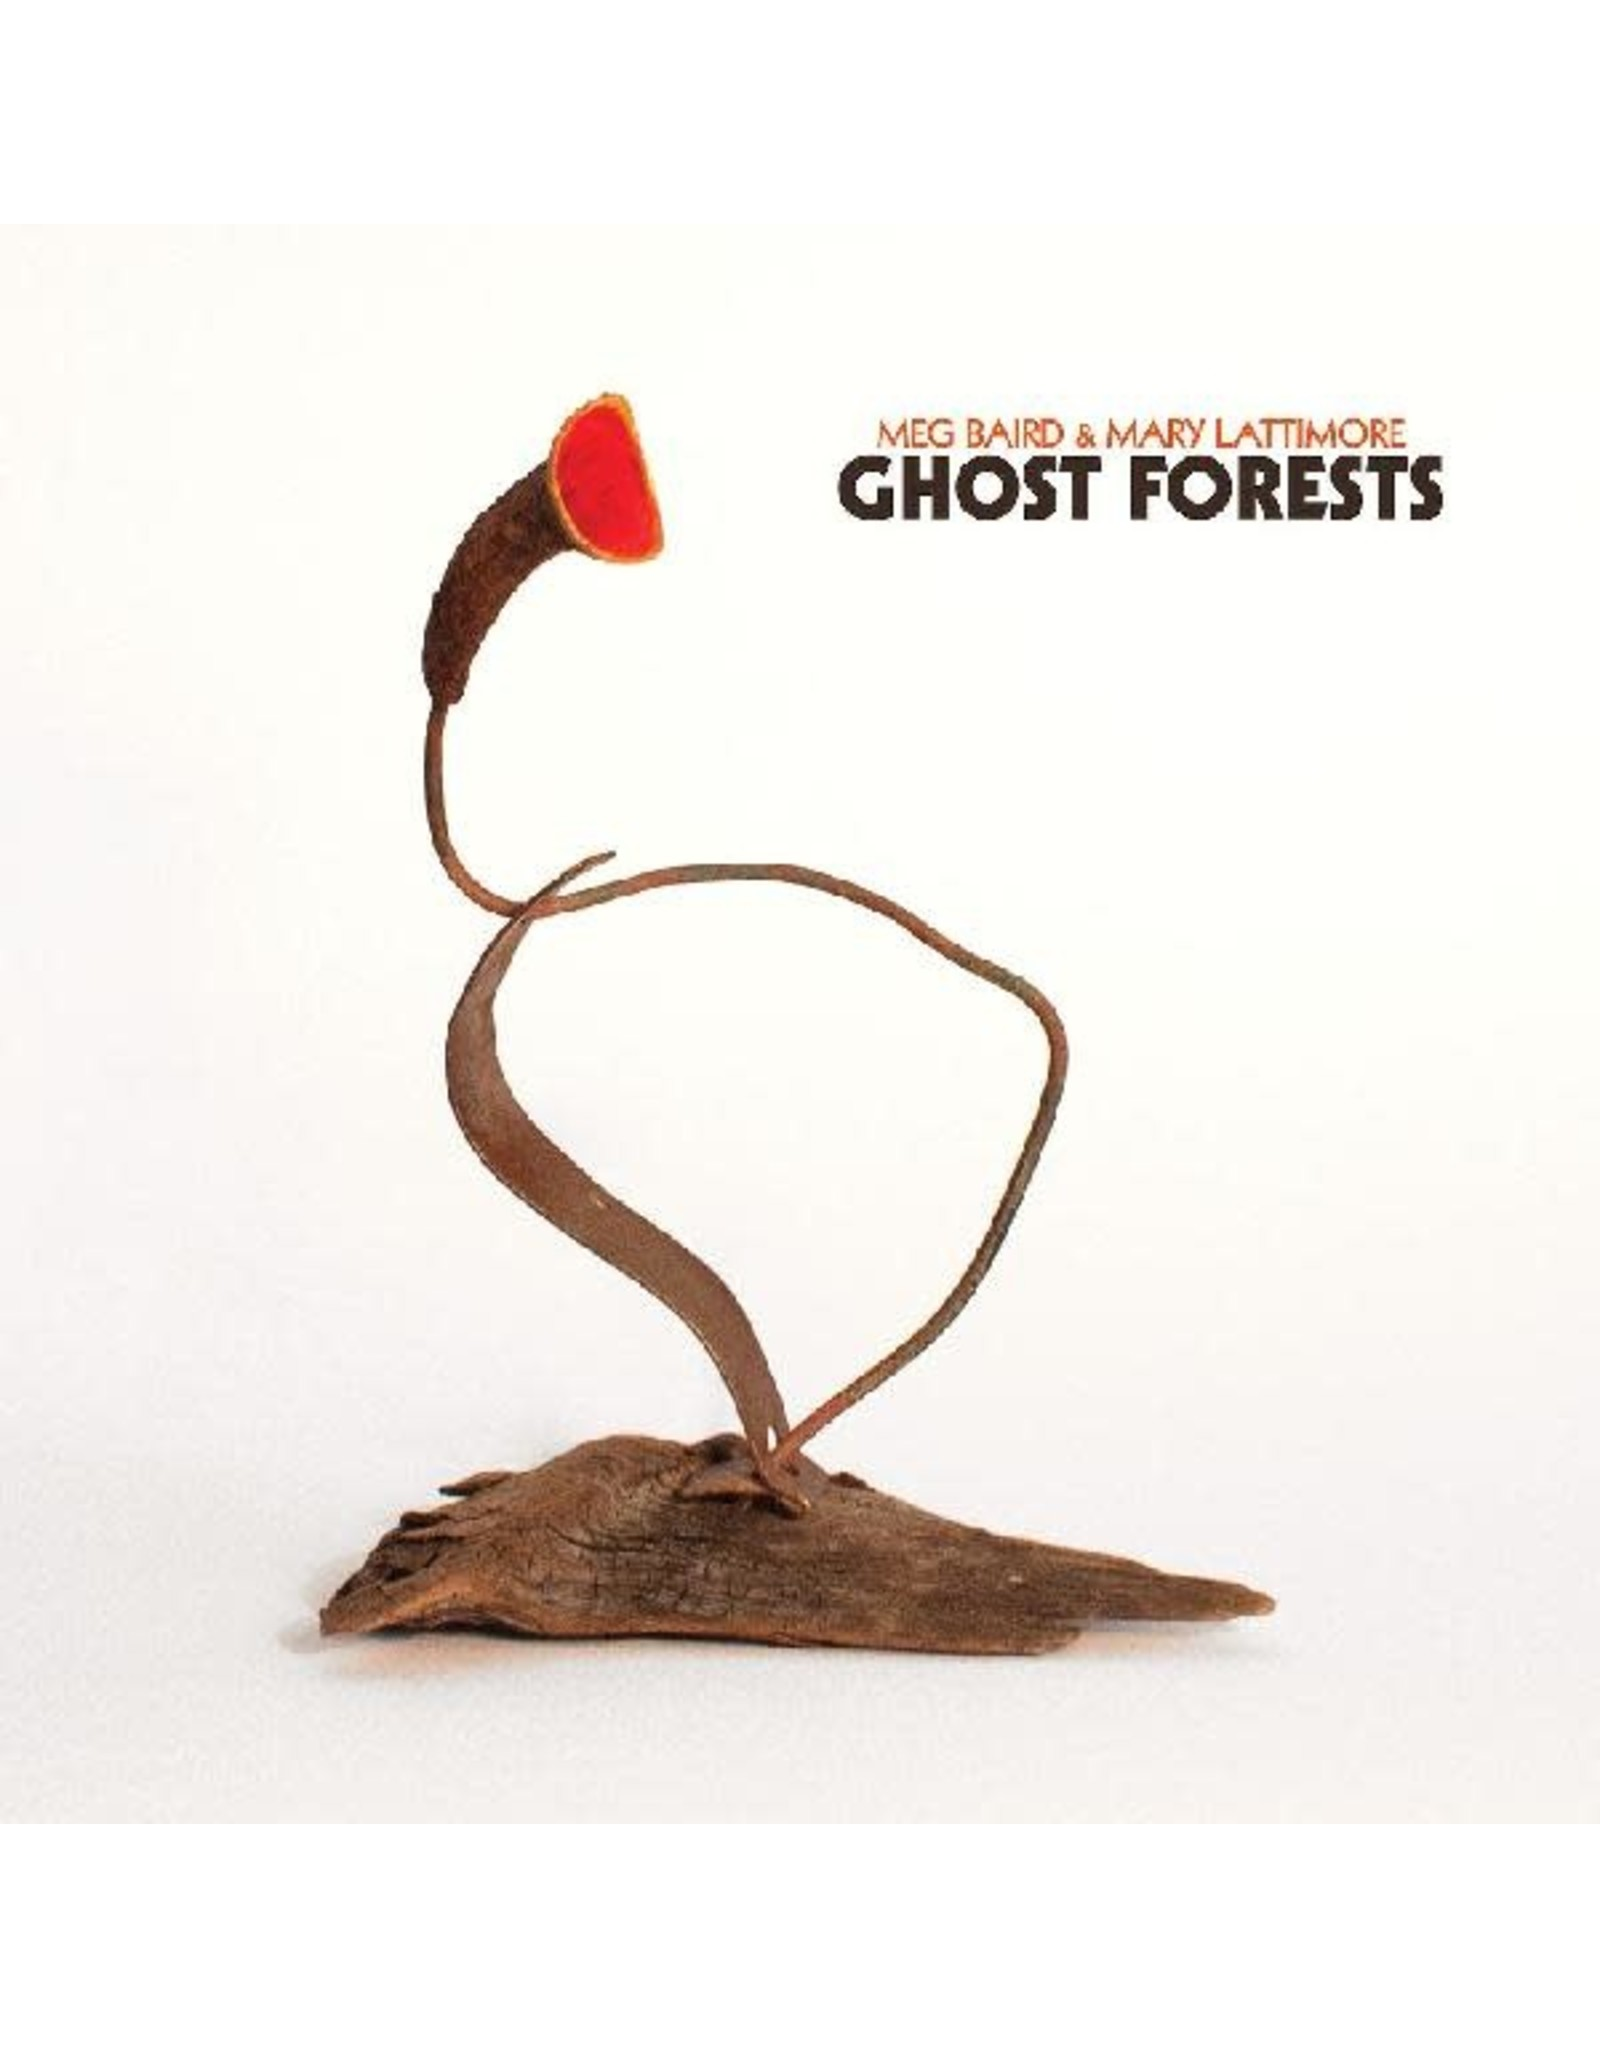 Three Lobed Baird, Meg And Mary Lattimore: Ghost Forests (COKE BOTTLE CLEAR) LP